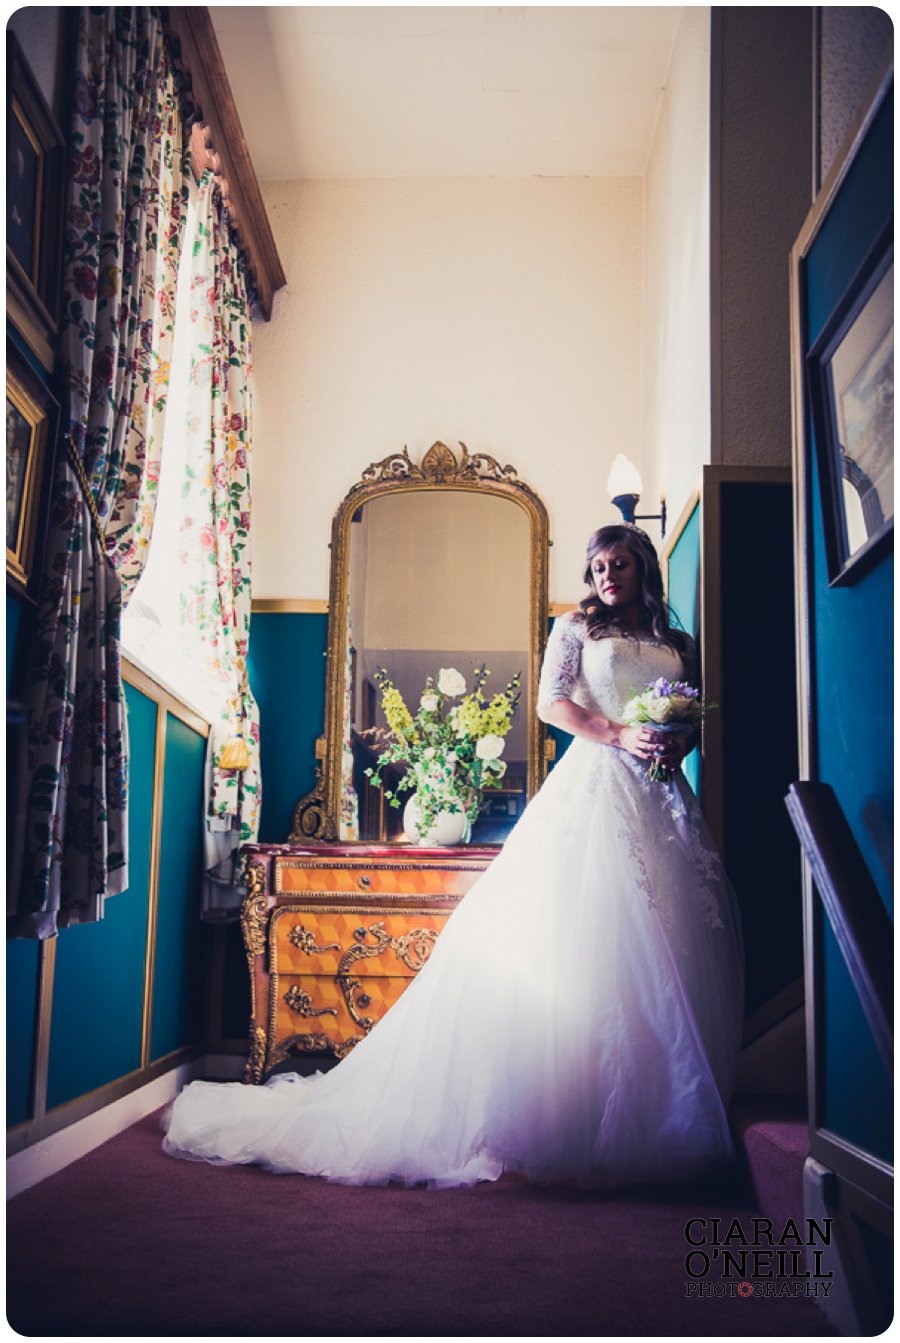 Abbie & Paul's wedding at Cabra Castle by Ciaran O'Neill Photography 19